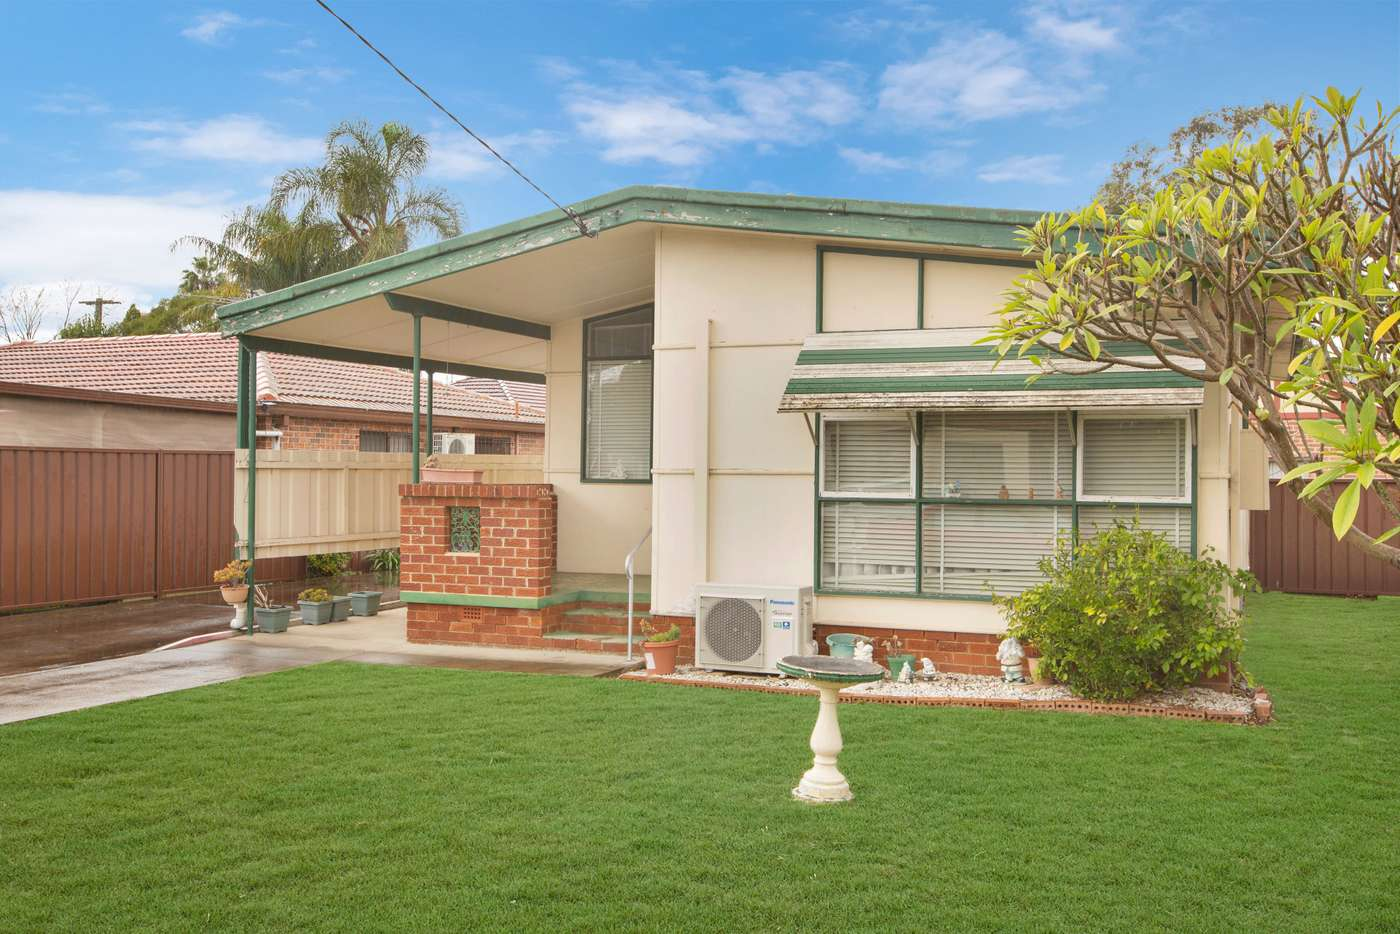 Main view of Homely house listing, 2 Curran Road, Marayong NSW 2148